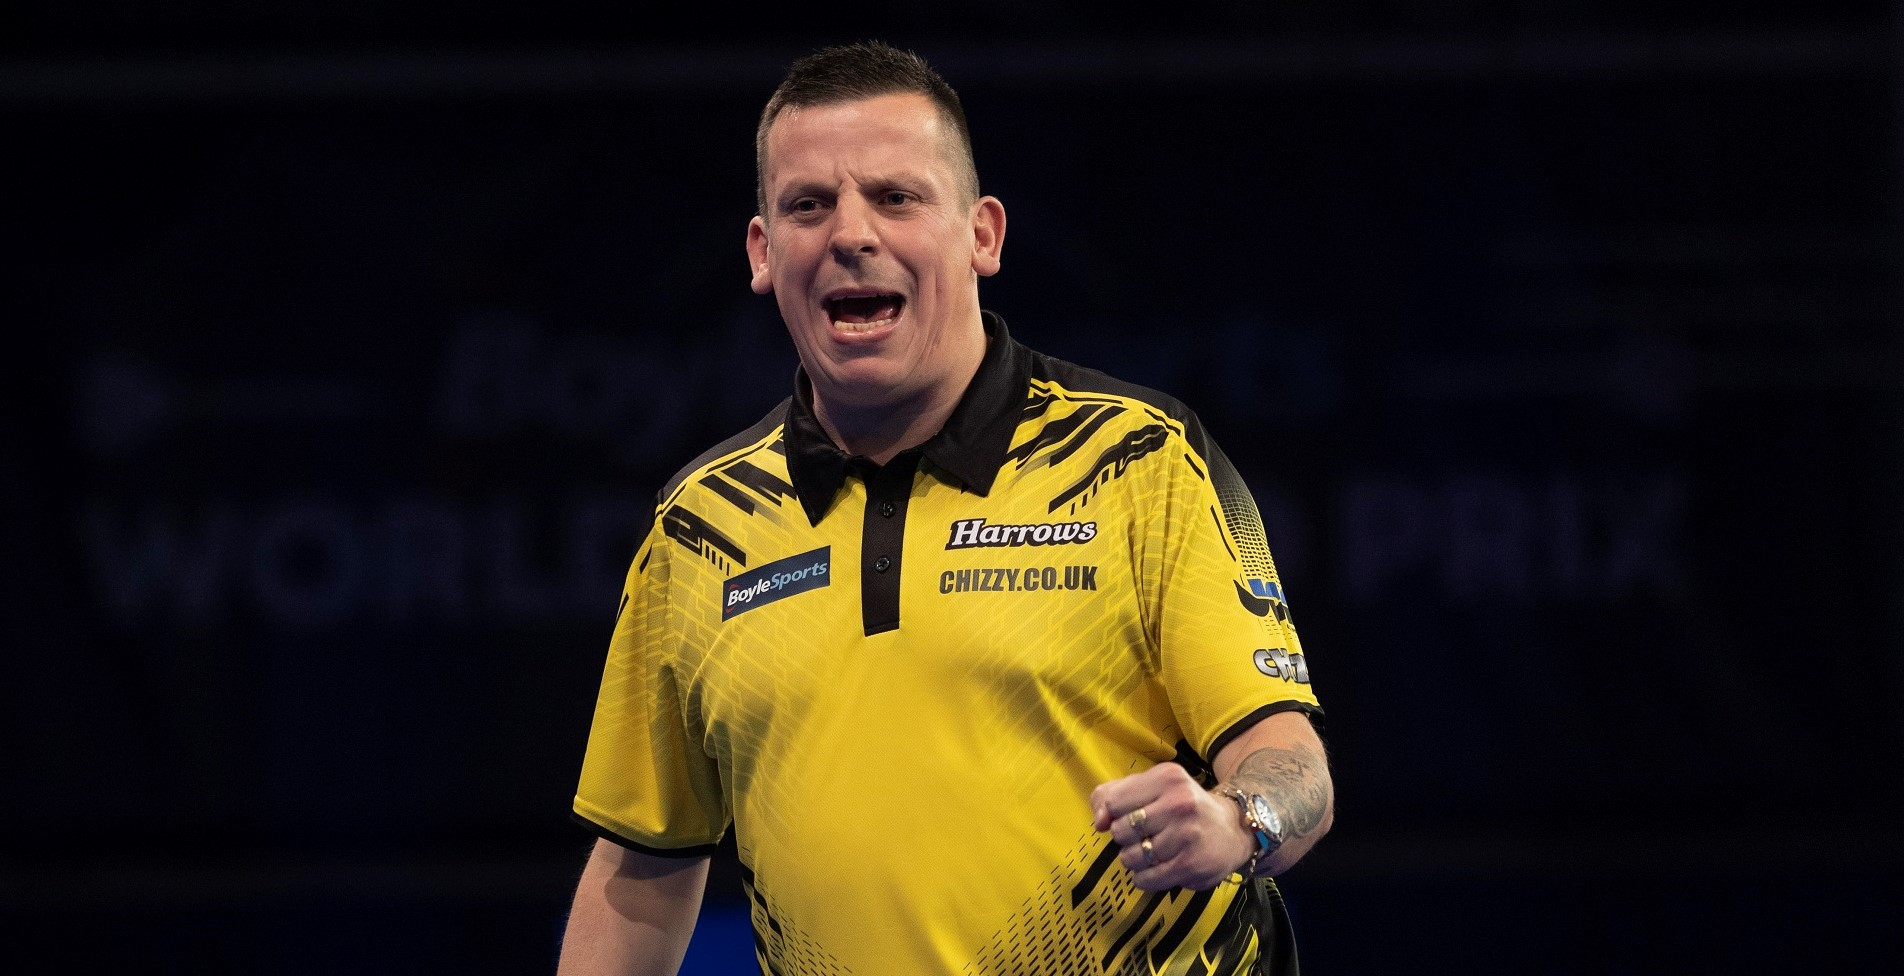 Chisnall becomes a father for second time